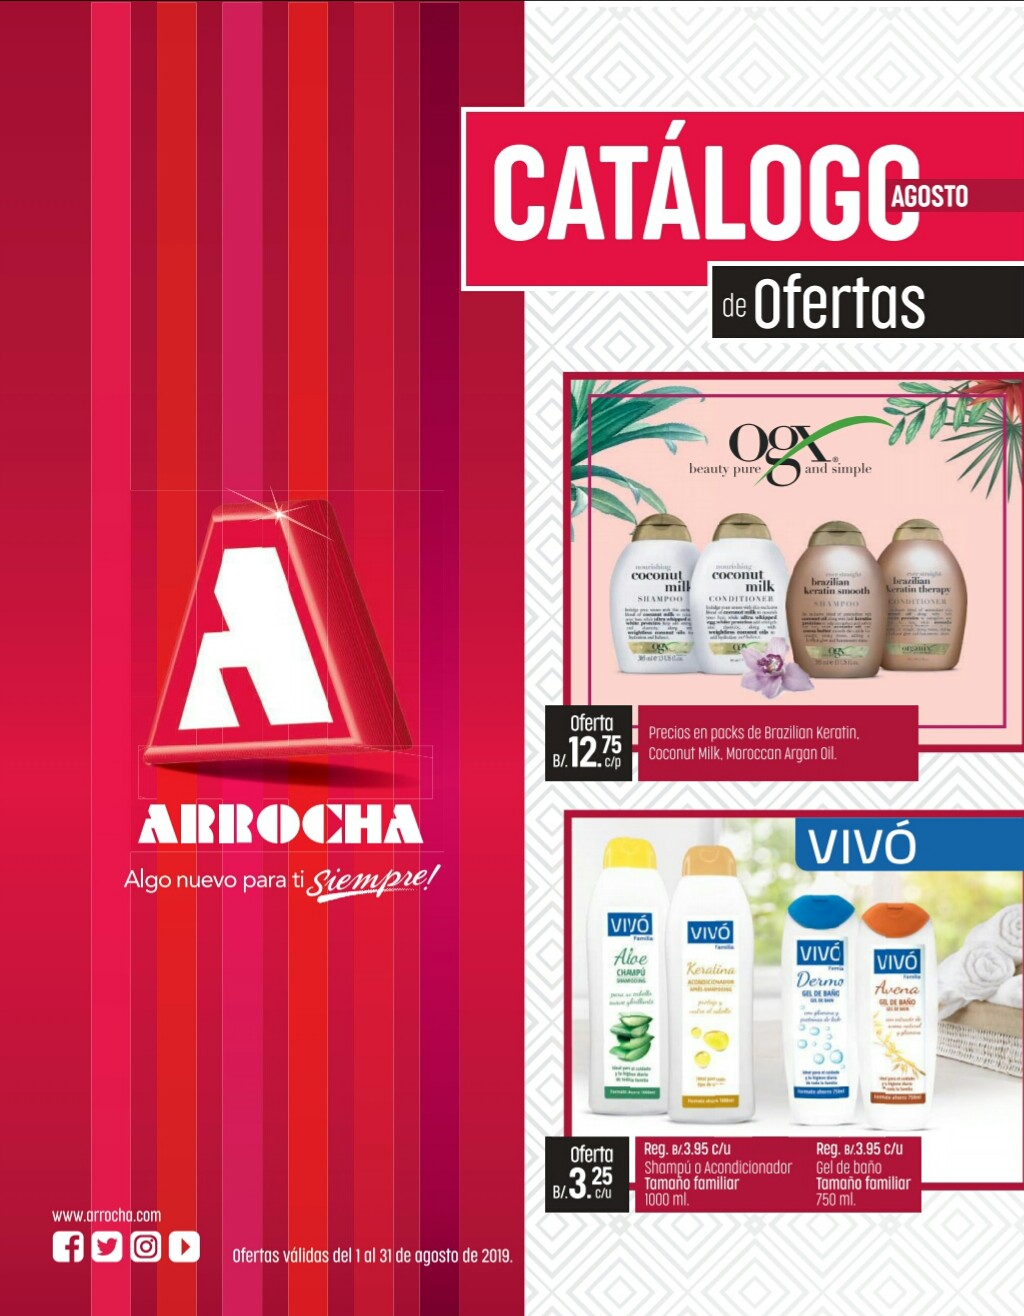 Catalogo Arrocha Agosto 2019 p1